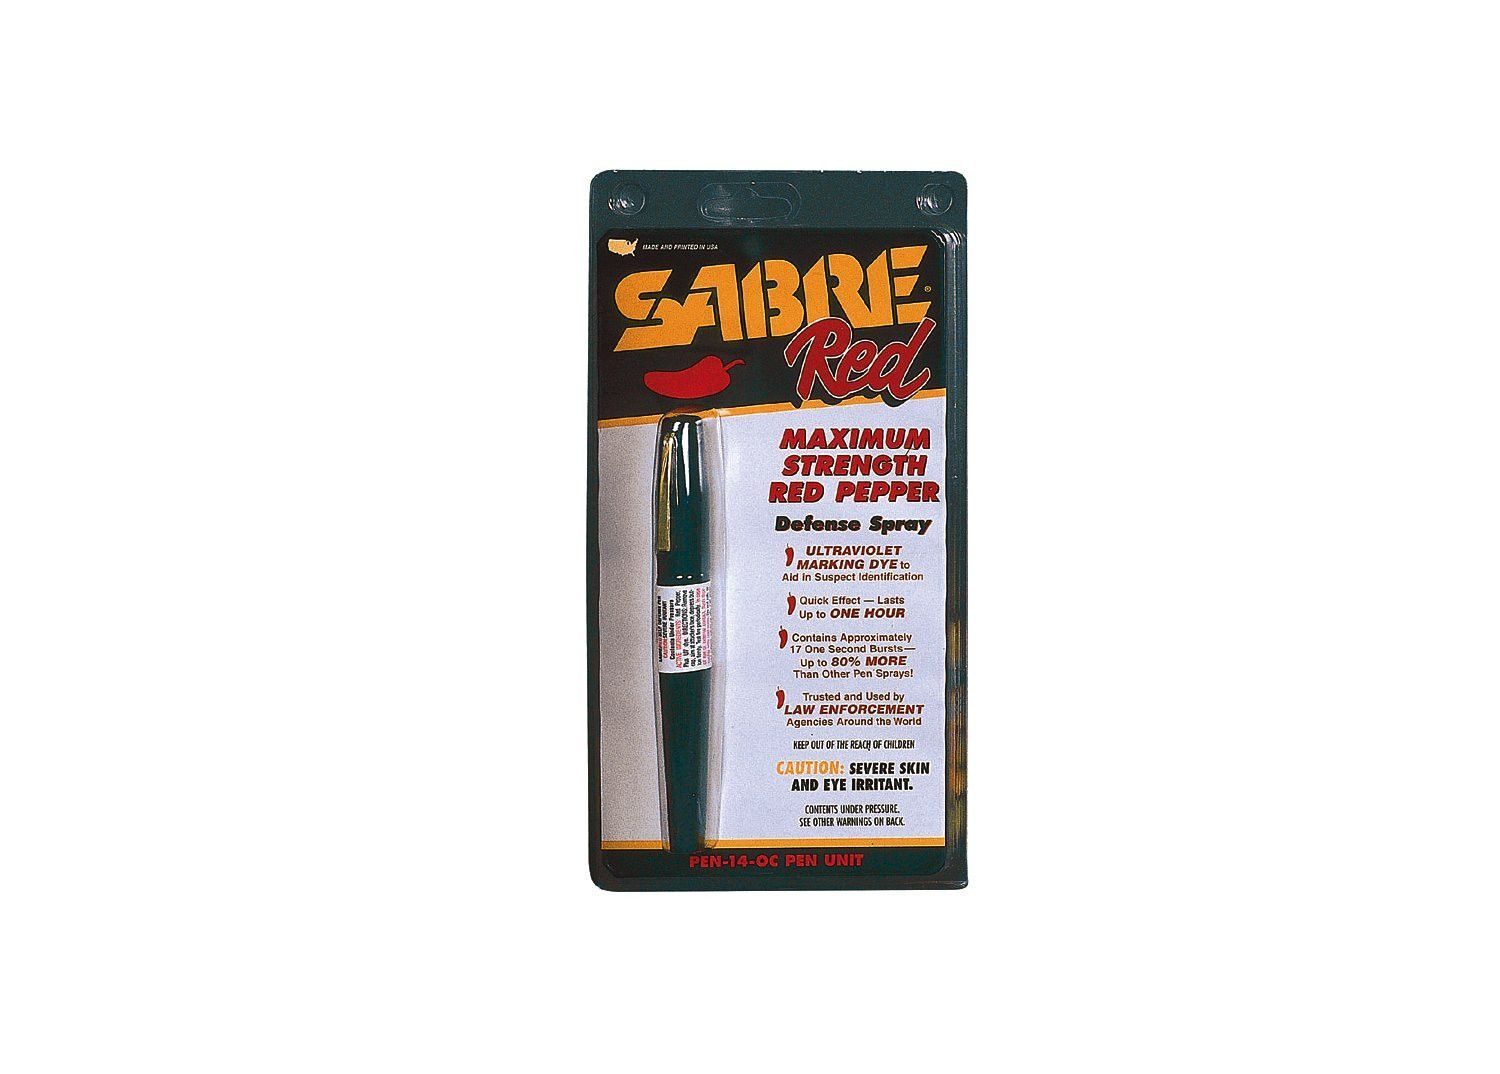 Sabre Super Red Pepper Gas Pen